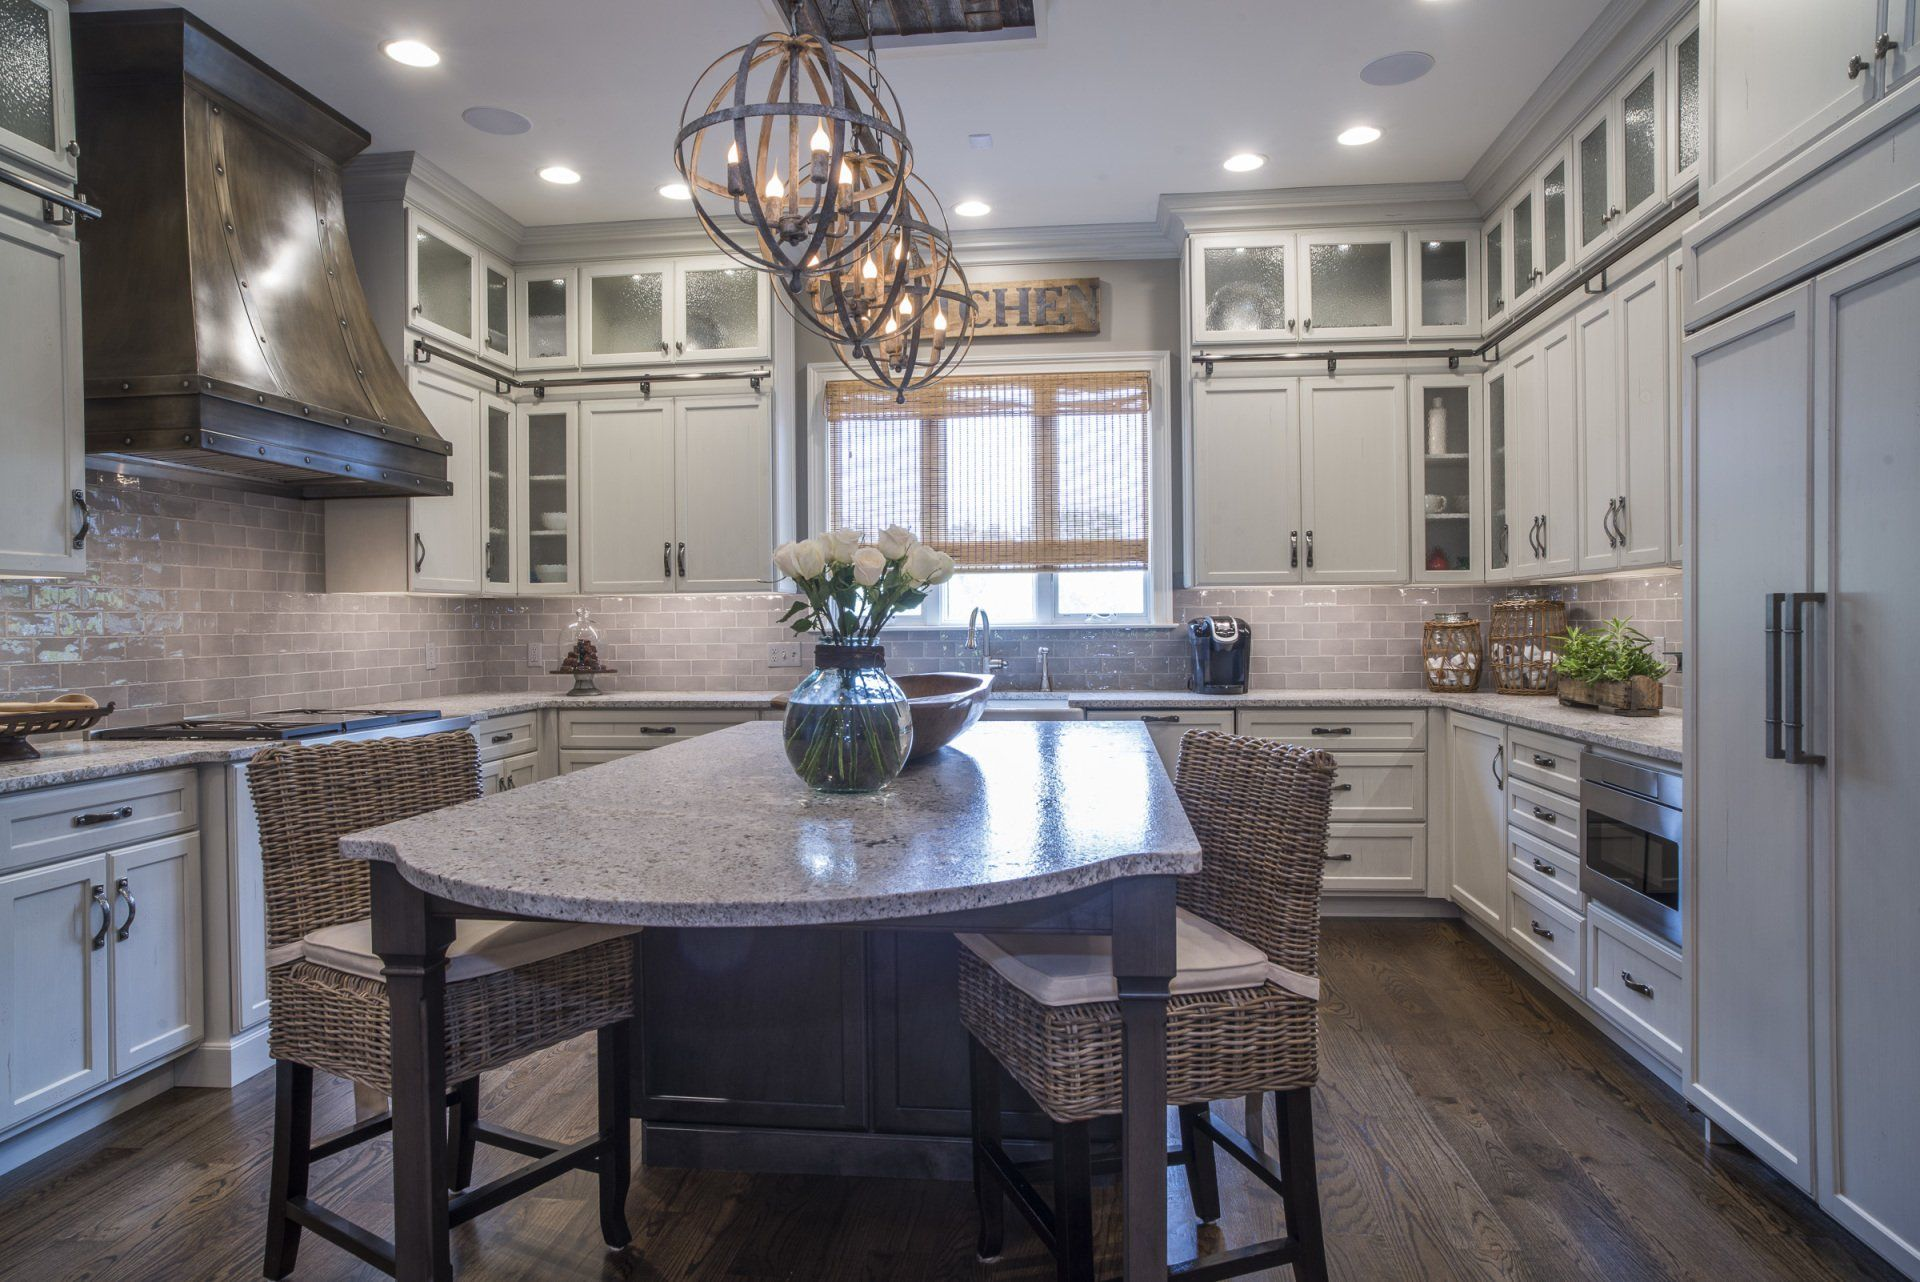 Kitchen Cabinetry Gallery | Classic Cabinetry in ...